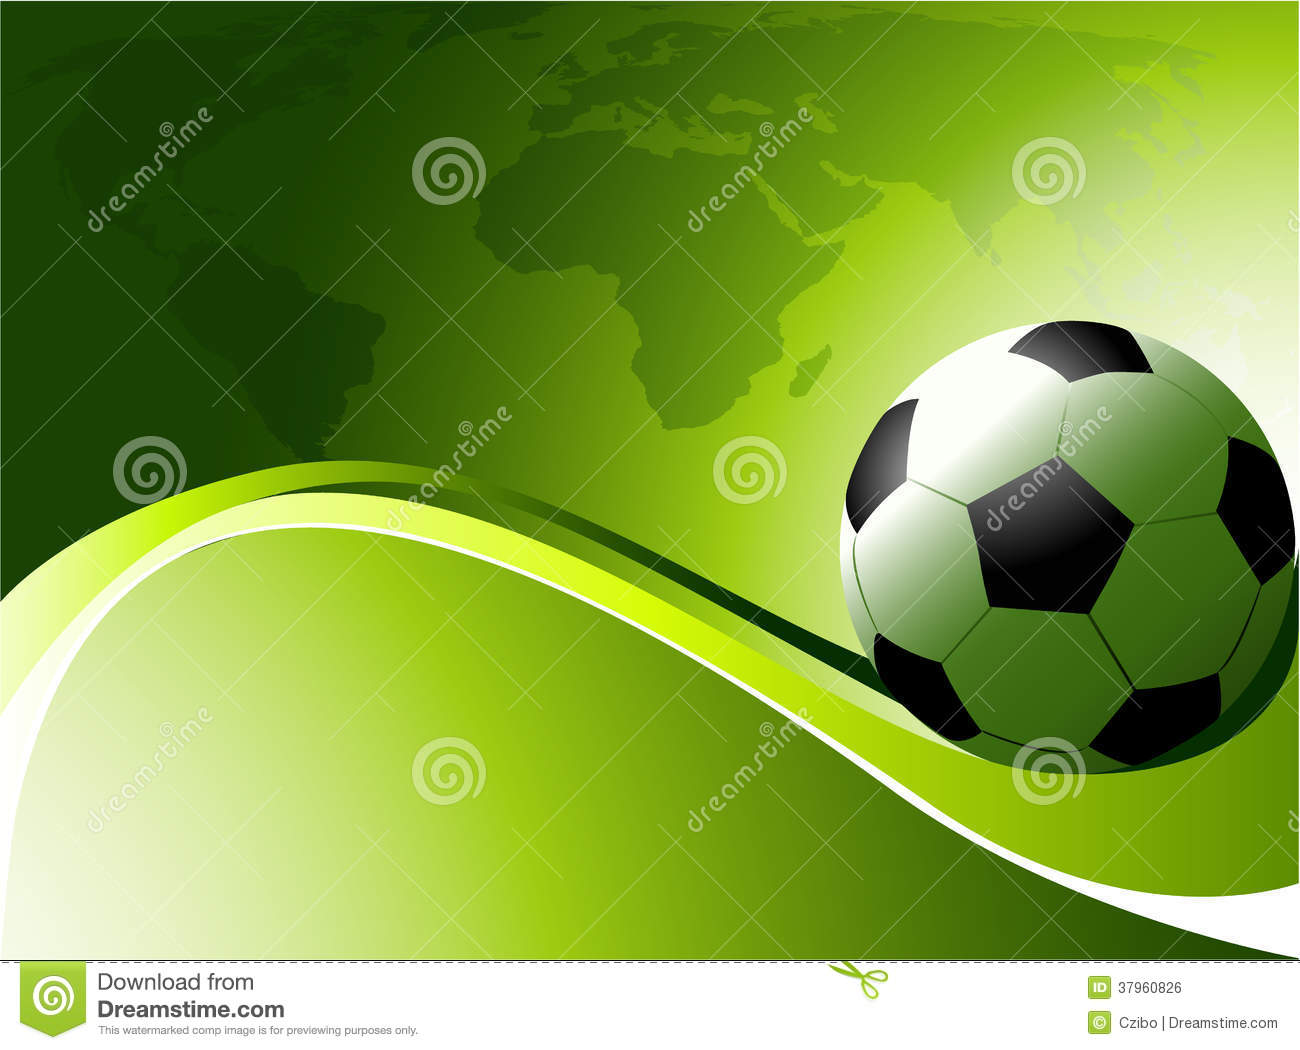 Abstract Sports Background Royalty Free Stock Image: Abstract Football Background Royalty Free Stock Image